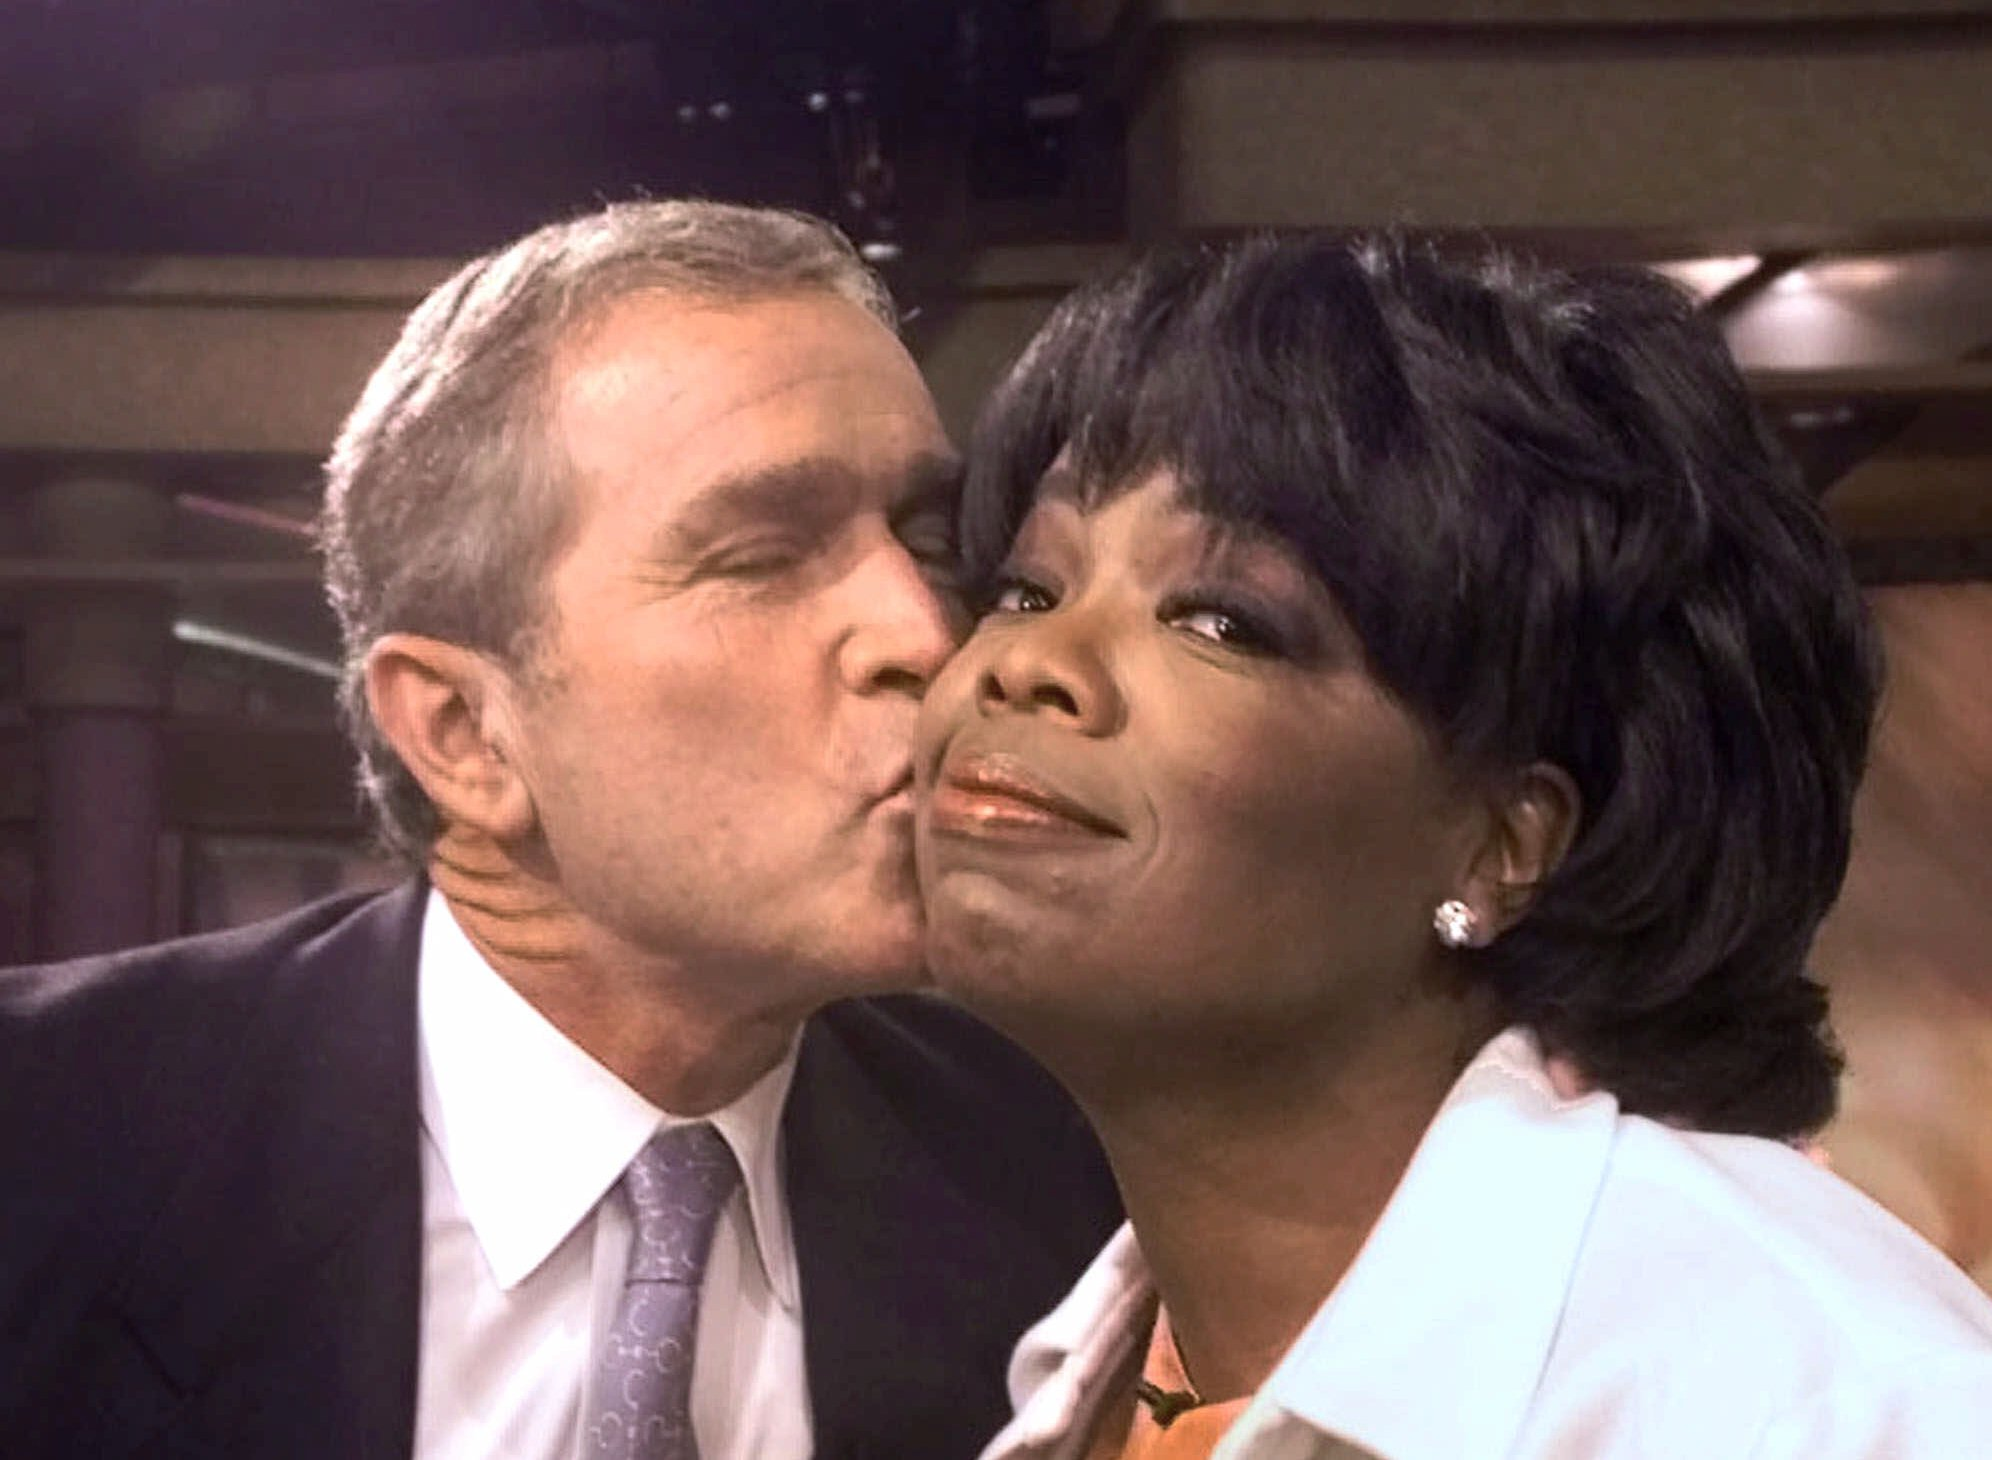 Republican presidential candidate Texas Gov. George W. Bush kisses talk show host Oprah Winfrey on Sept. 19, 2000 after appearing on her program in Chicago.